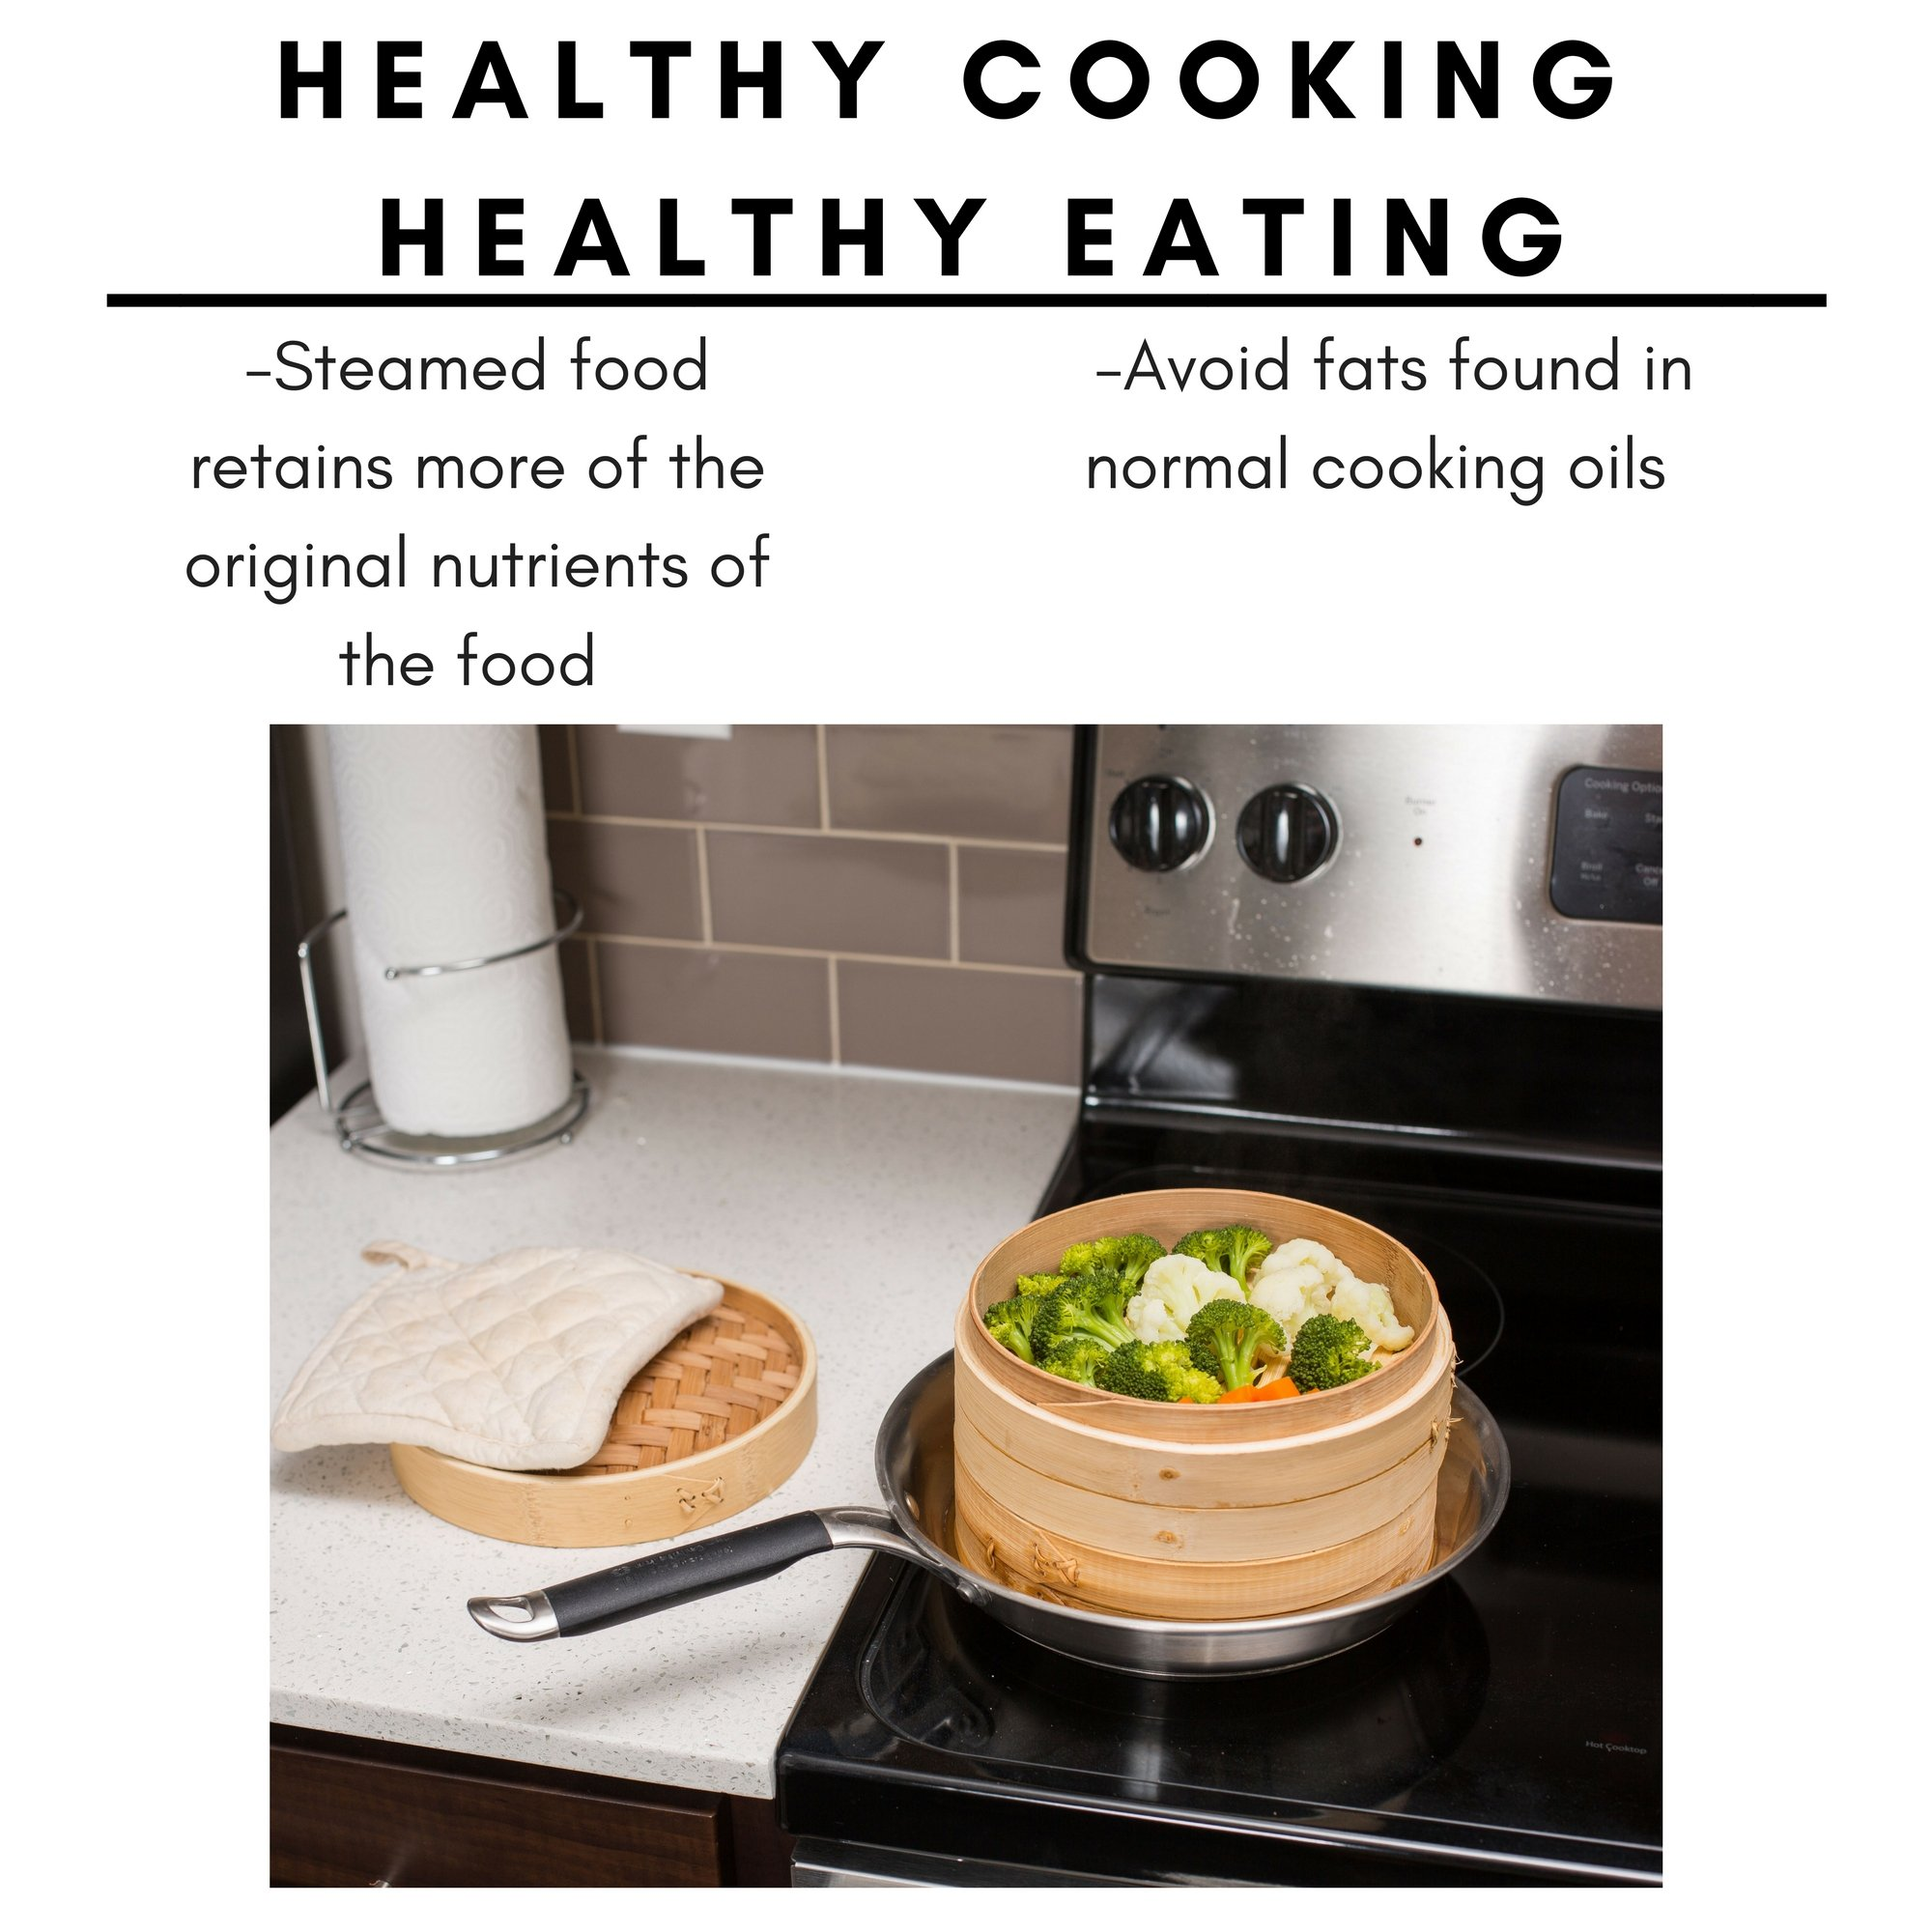 BirdRock Home 10 Inch Bamboo Steamer | Classic Traditional Design | Healthy Cooking | Great for dumplings, vegetables, chicken, fish | Steam Basket | Natural by BirdRock Home (Image #2)